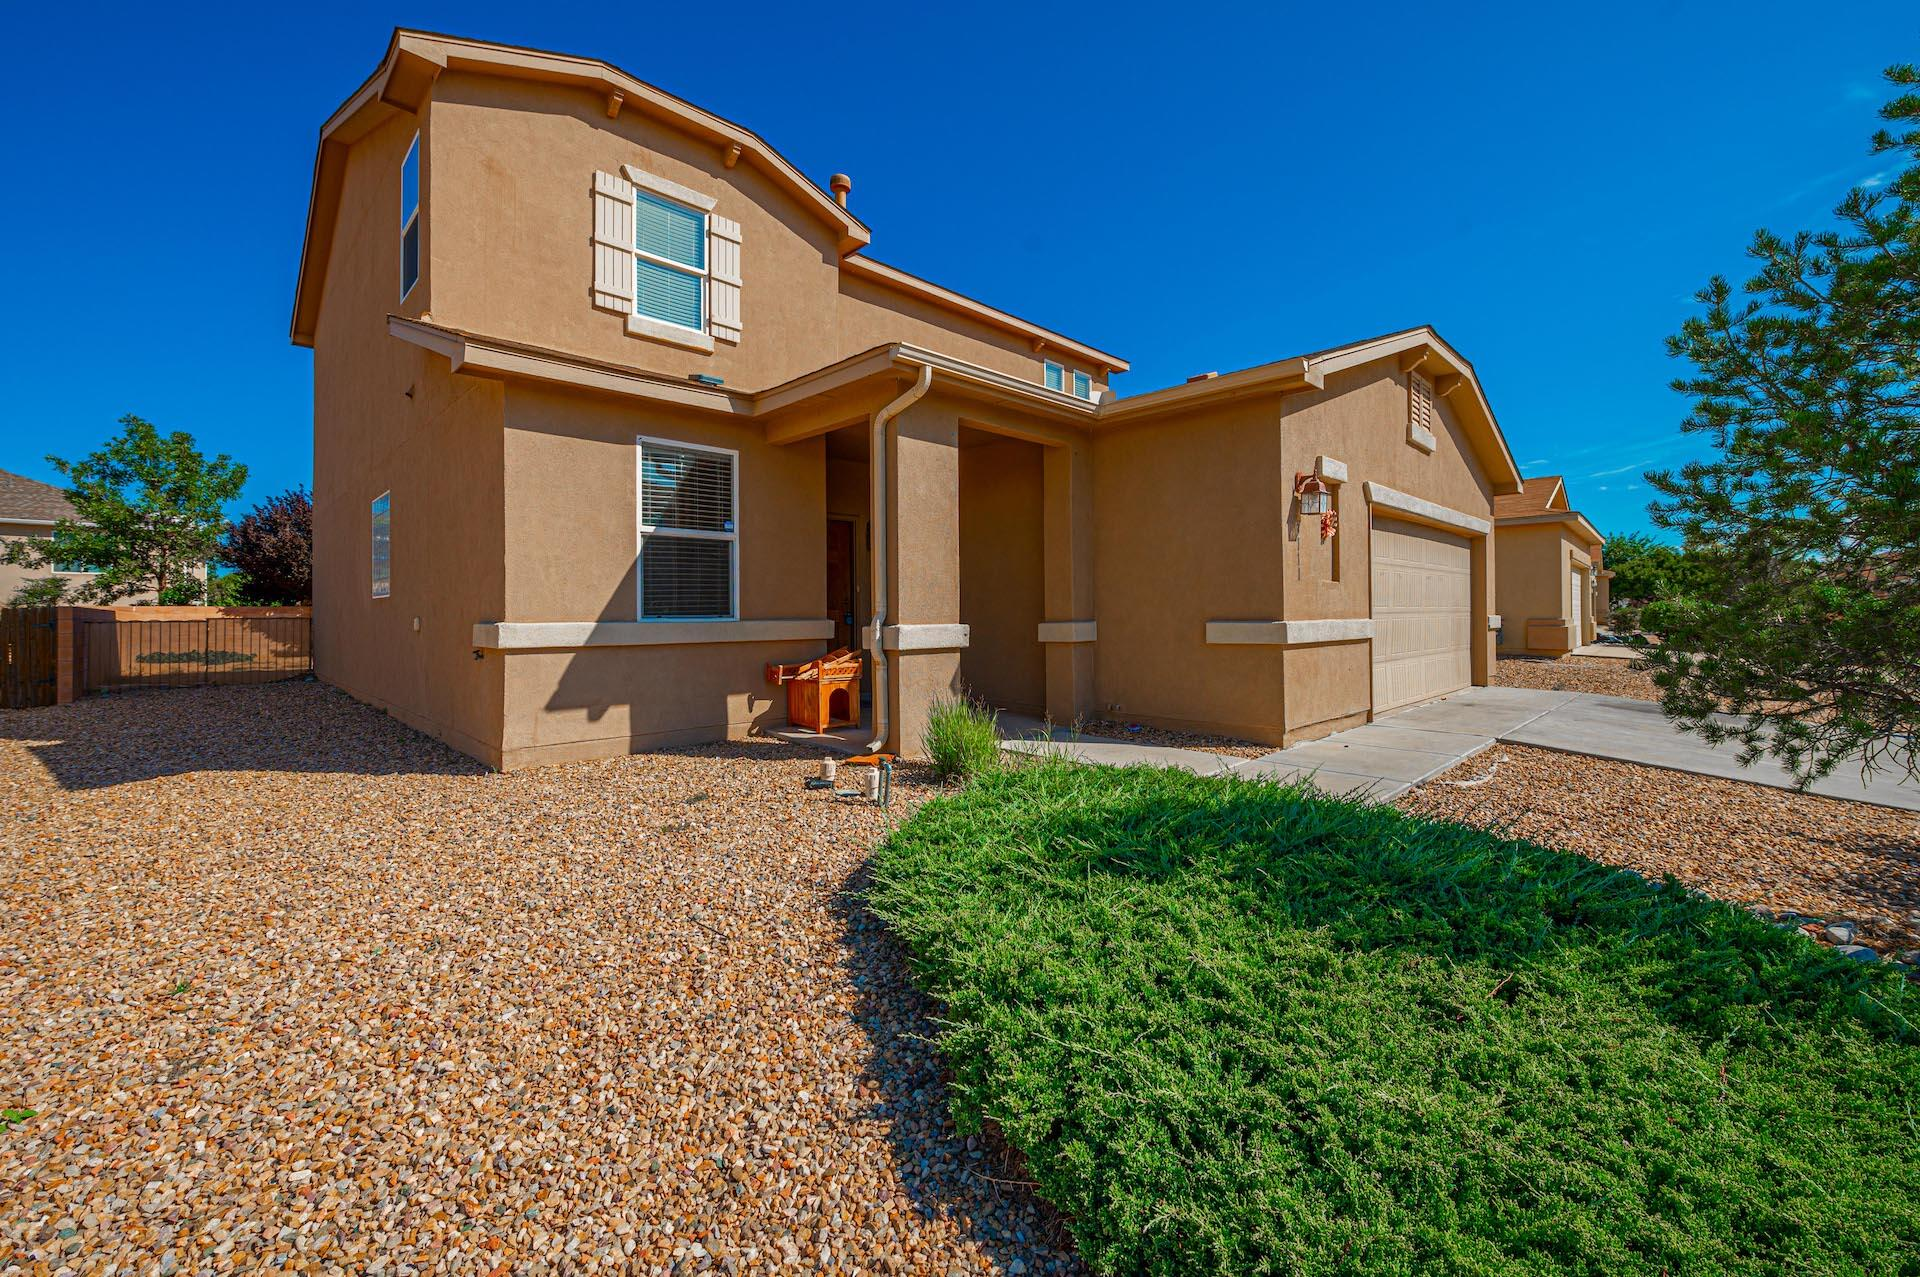 Very open floor plan with downstairs Master Suite. Tile surround fireplace, stainless steel appliances, granite counter tops, ceramic tile back splash in kitchen. Refrigerated air will keep you cool all summer long. Planned community with landscaped walking trails & beautiful views. Easy access to I-25 & minutes to Albuquerque.